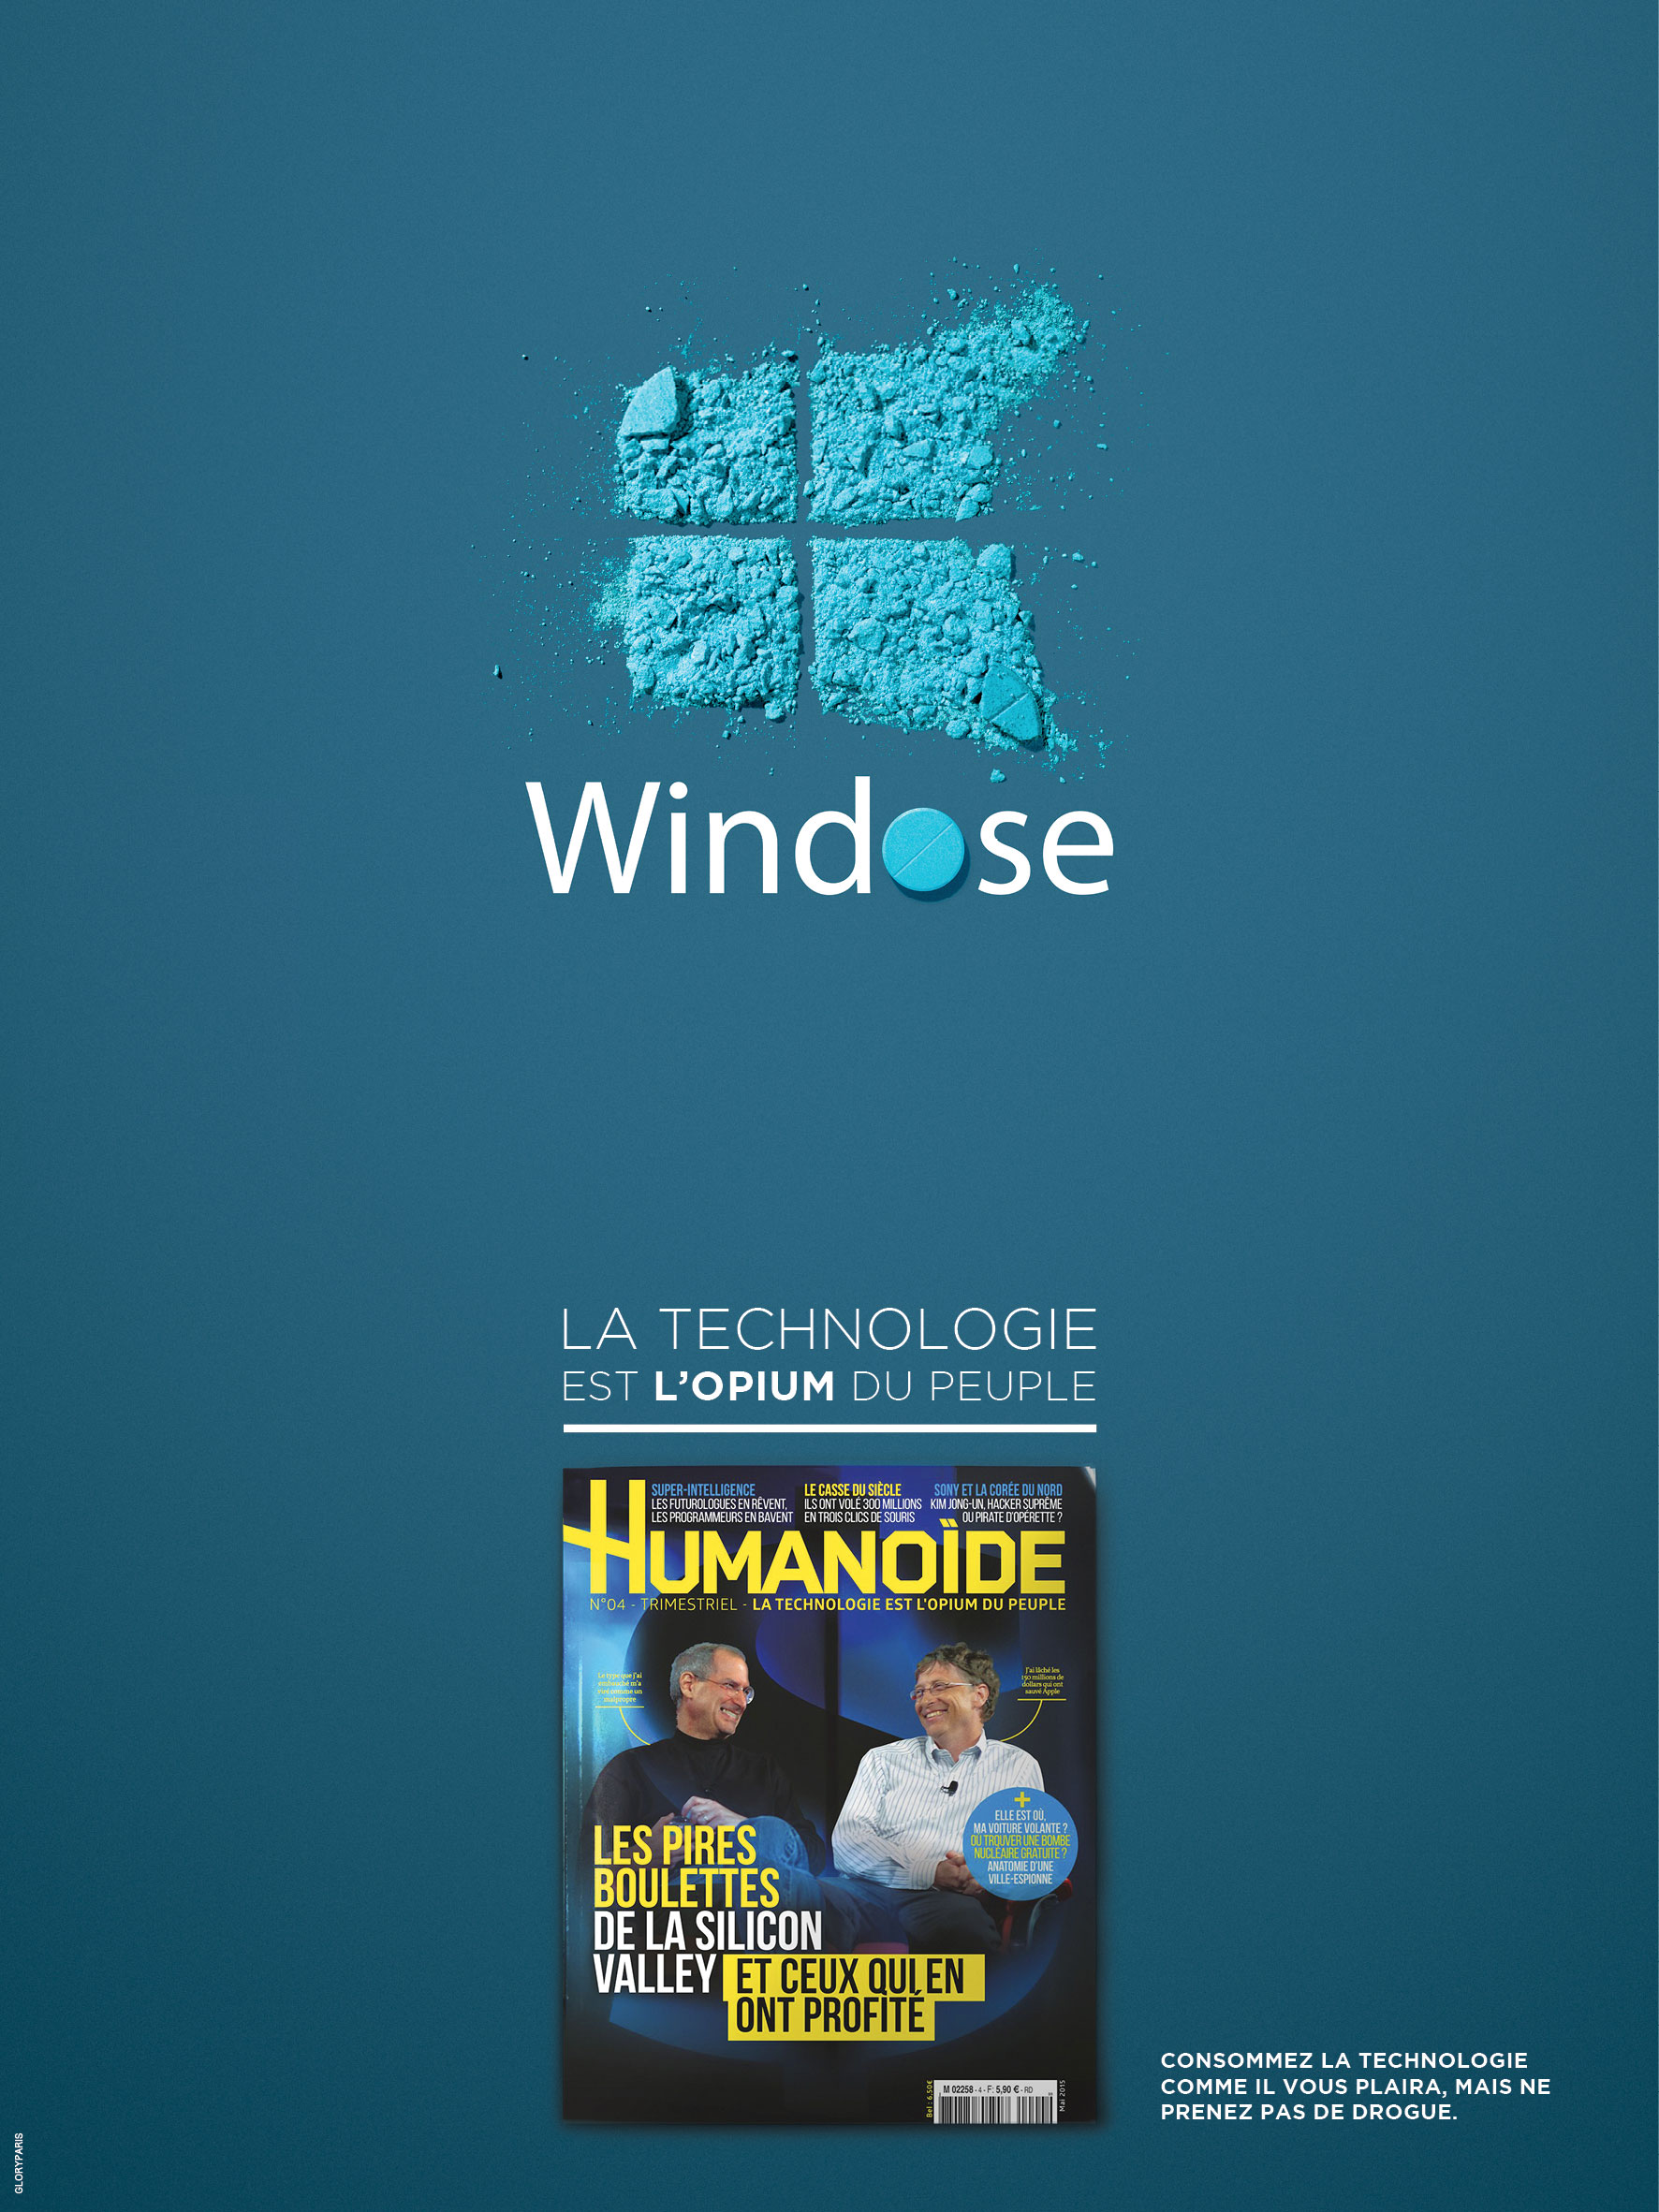 dans-ta-pub-humanoide-print-publicité-affiche-technologie-web-drogue-addiction-digital-1